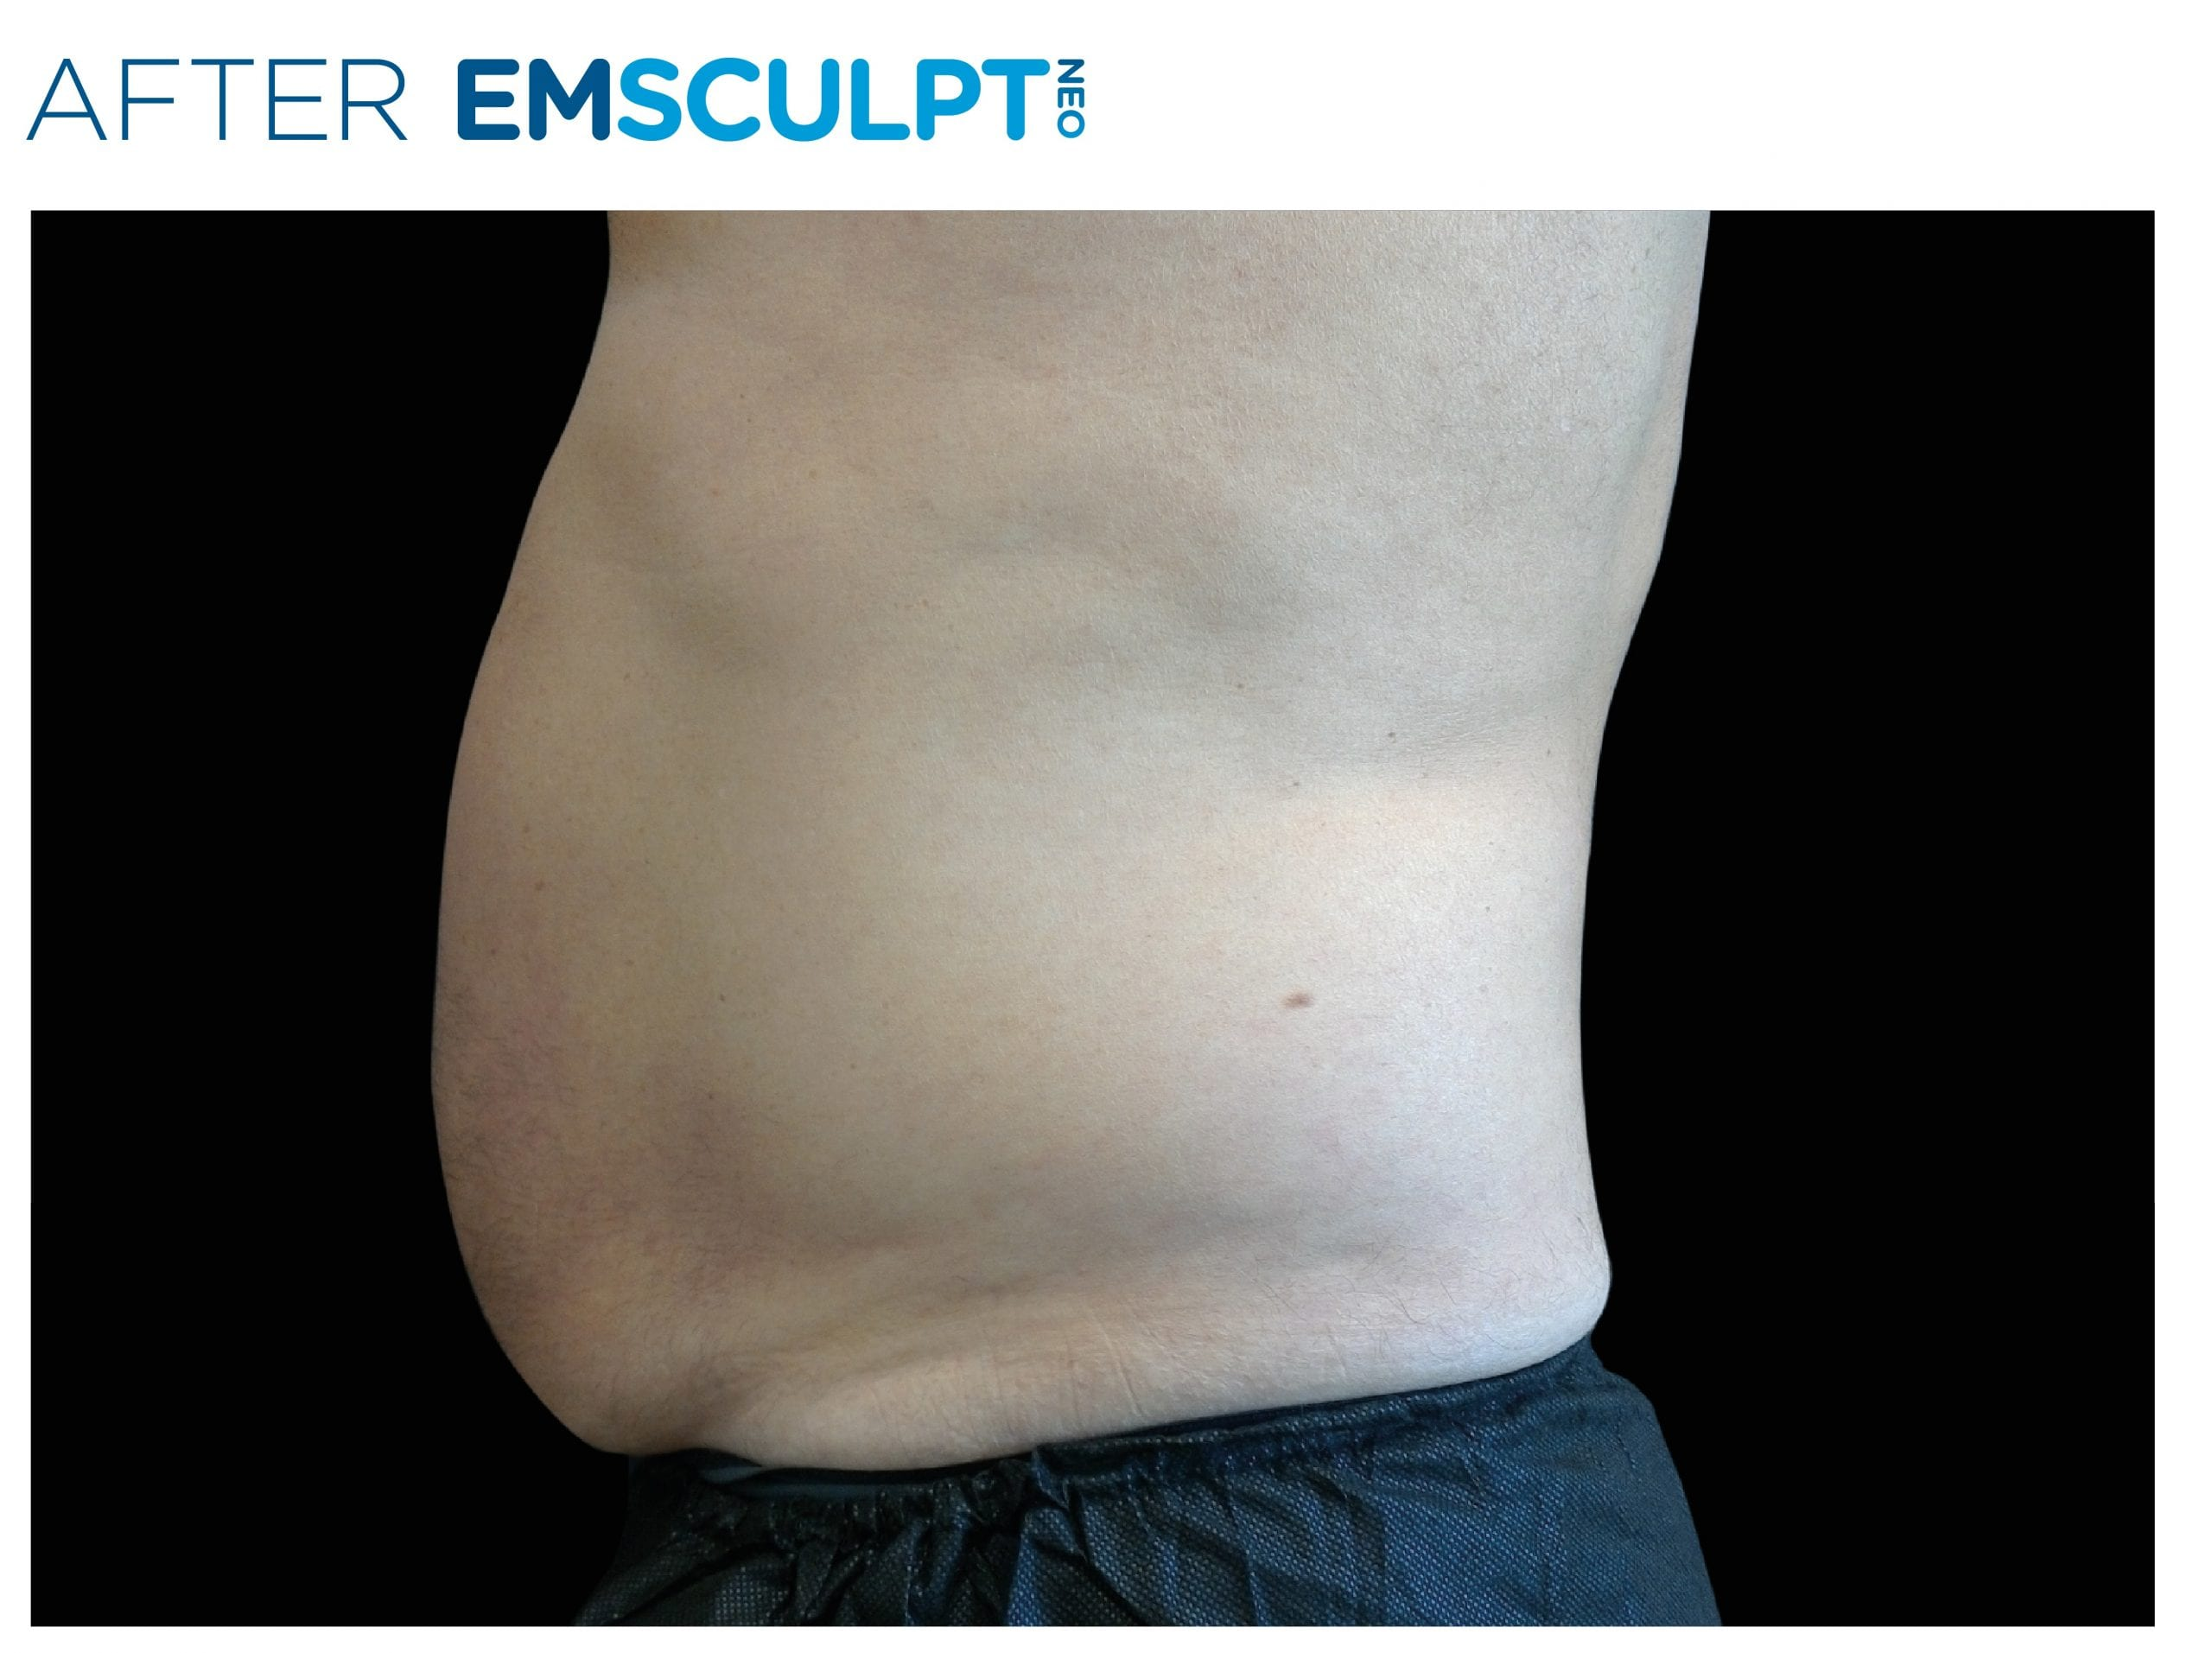 EMSculpt Neo After Treatment photo man